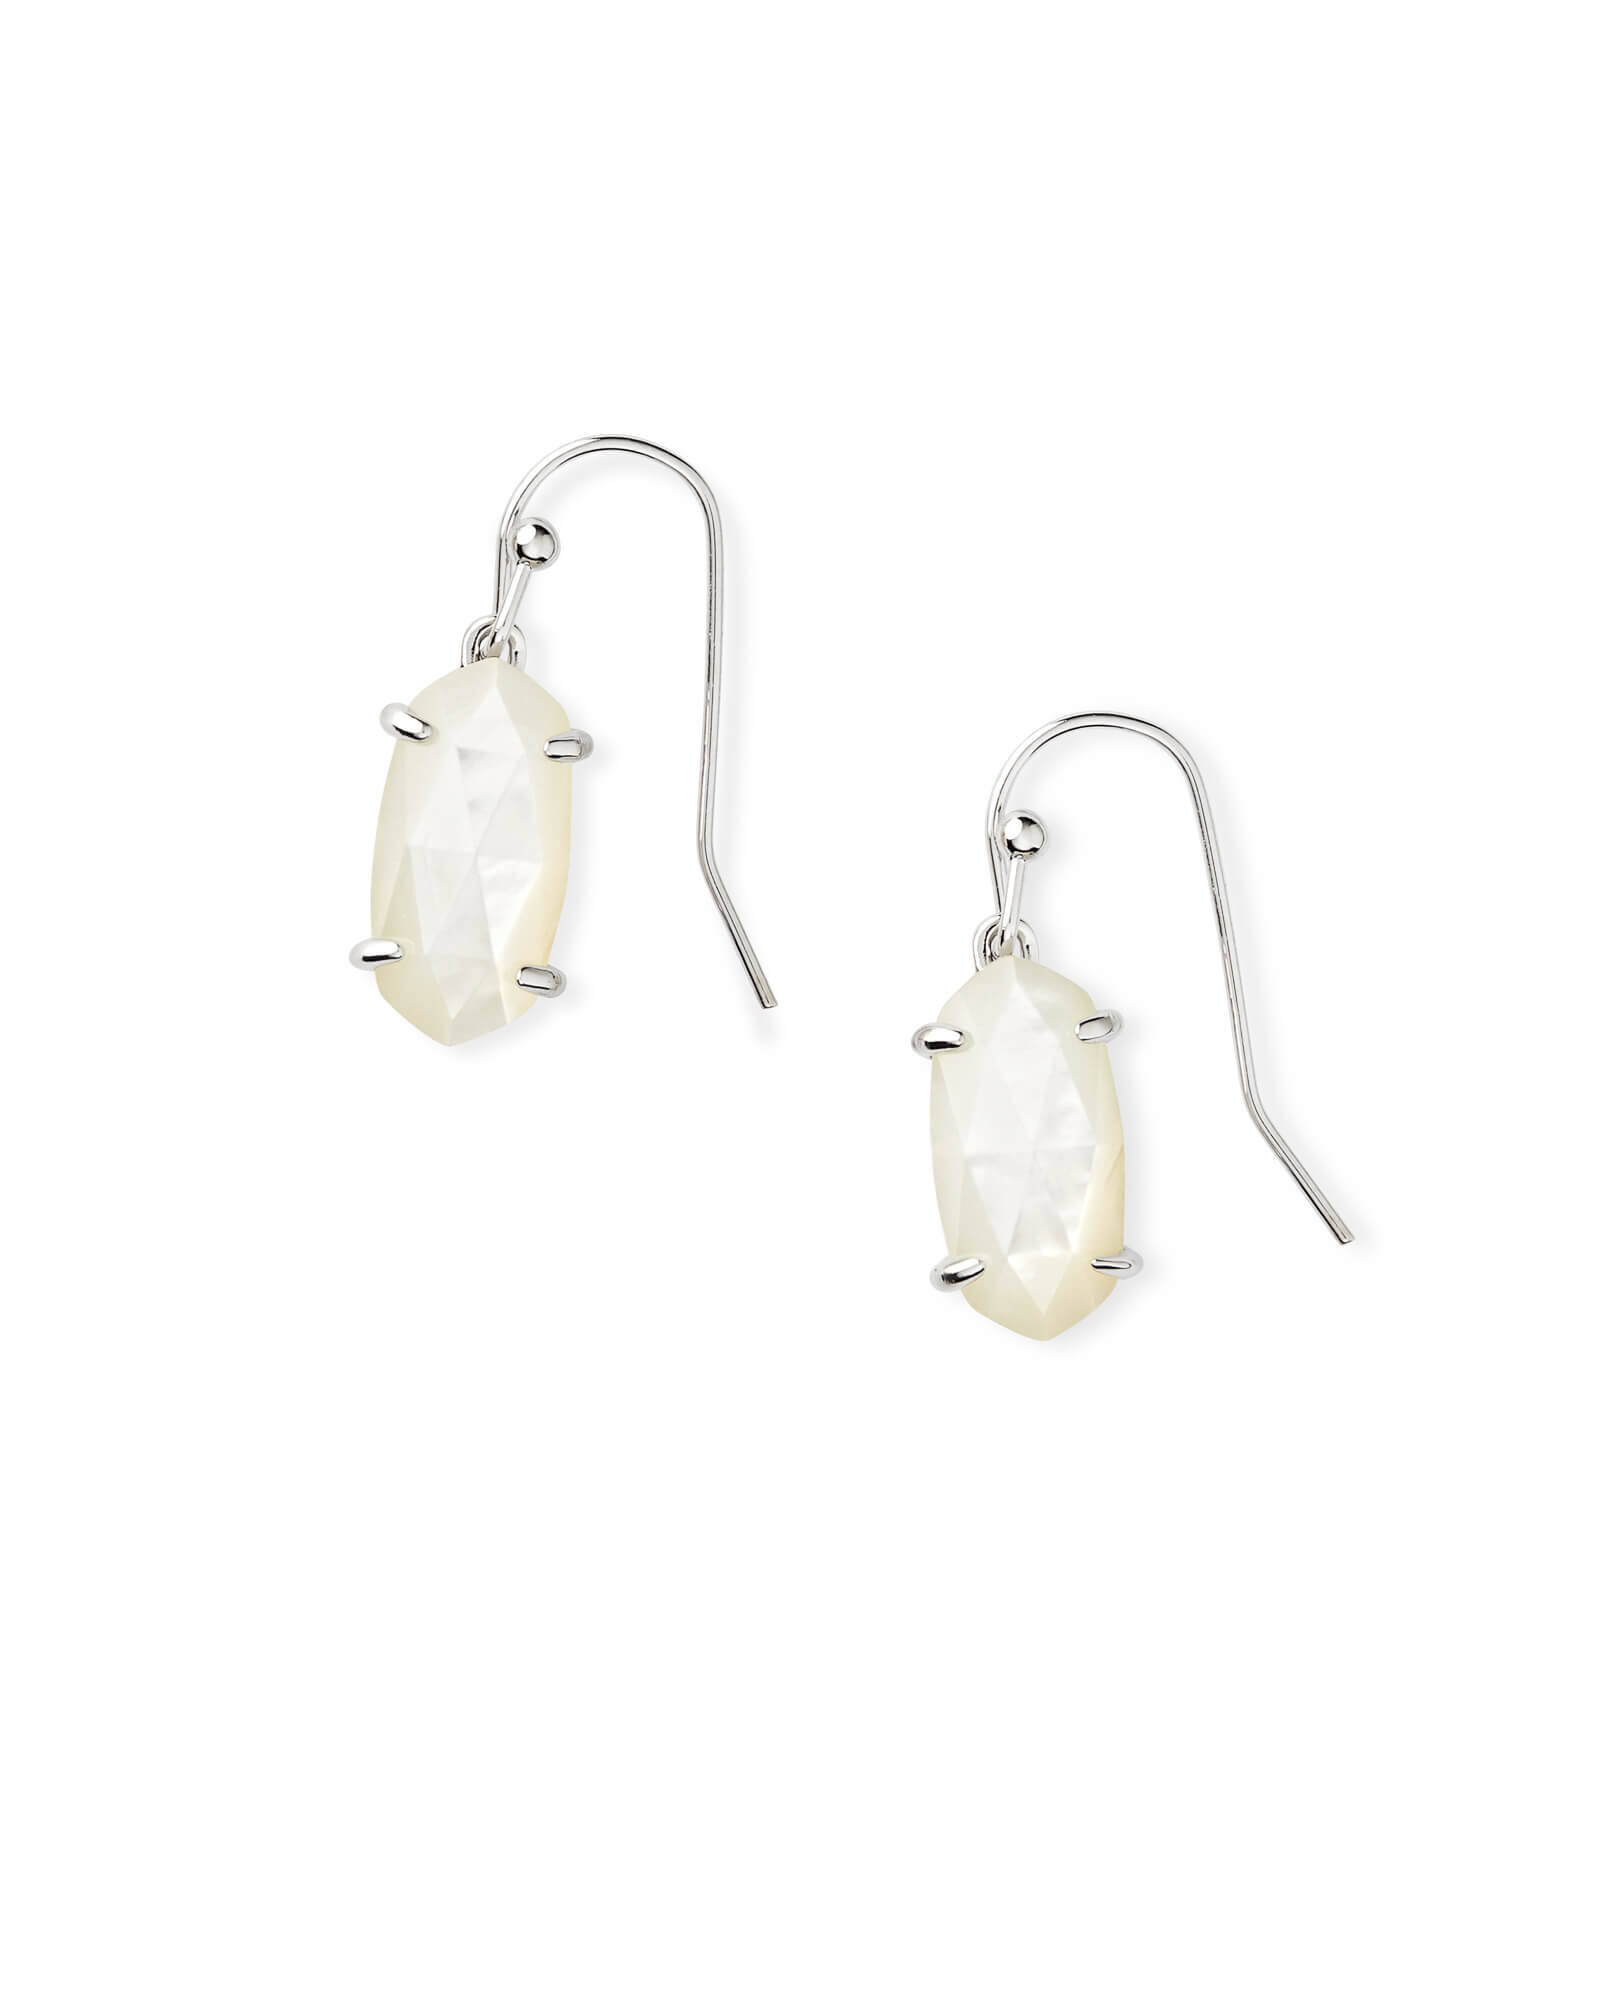 Lemmi Silver Drop Earrings in Ivory Pearl